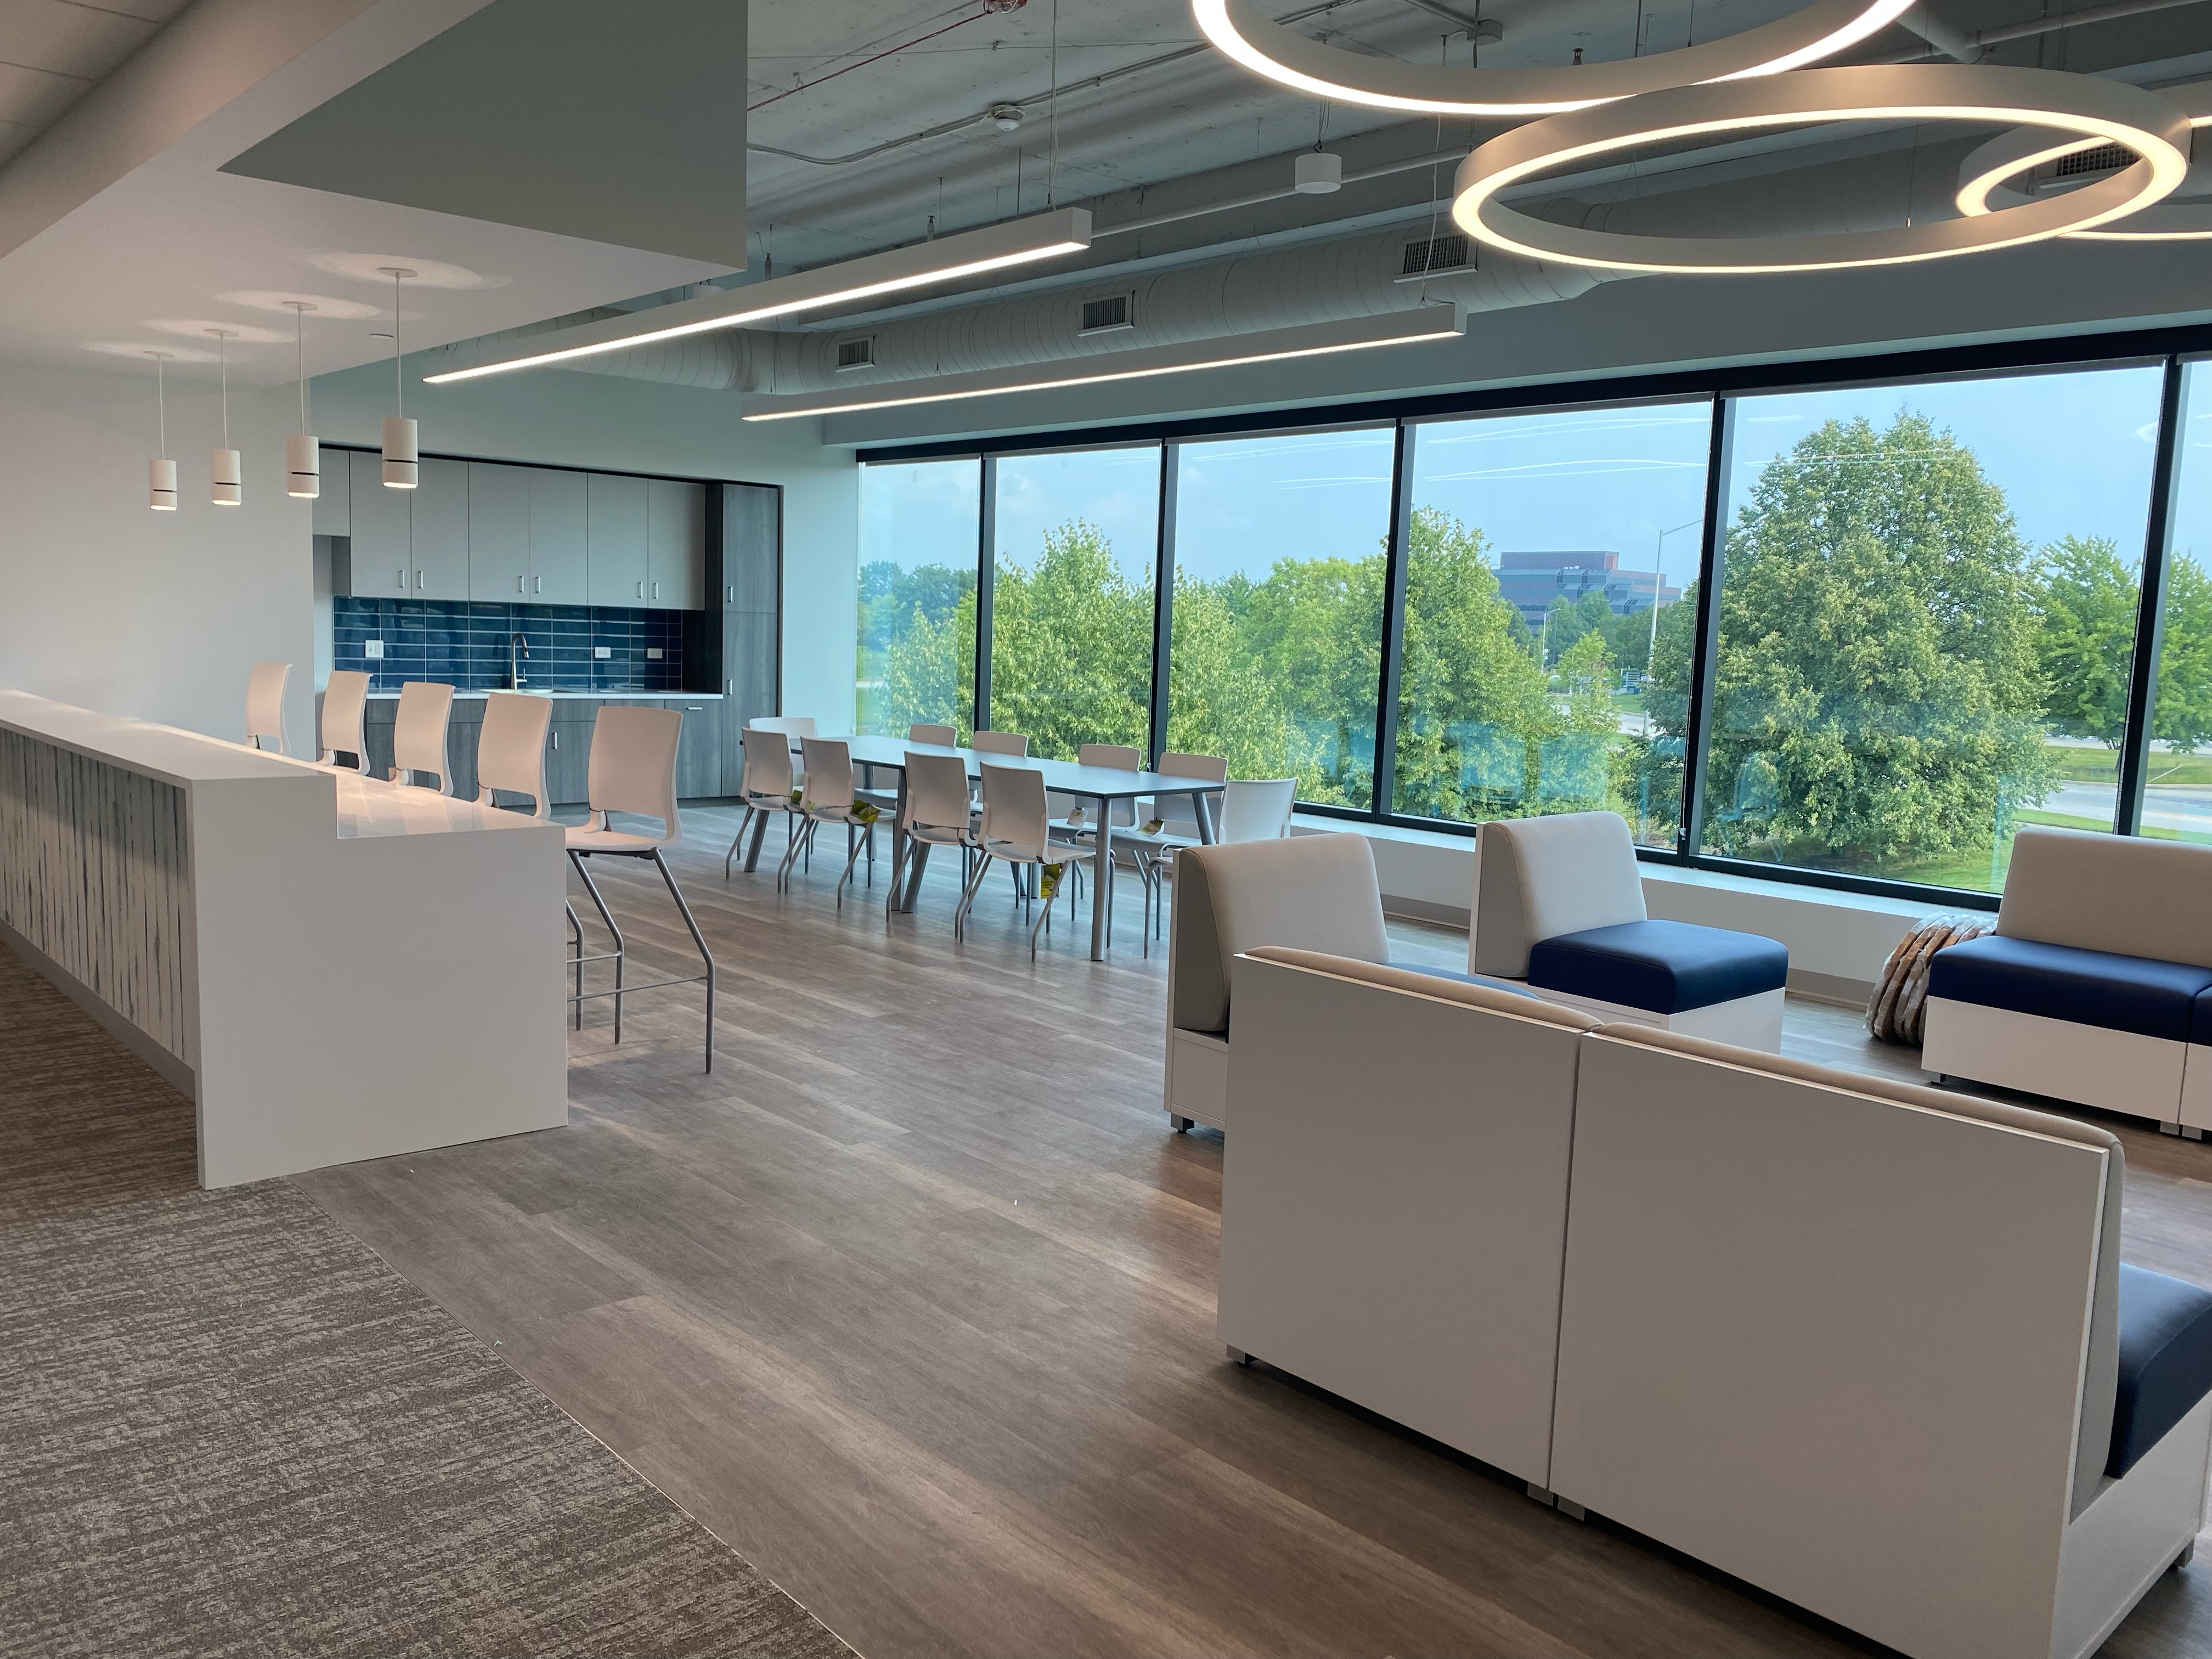 New Compass Health Center Location Brings Intensive Behavioral Healthcare to Chicago's Western Suburbs